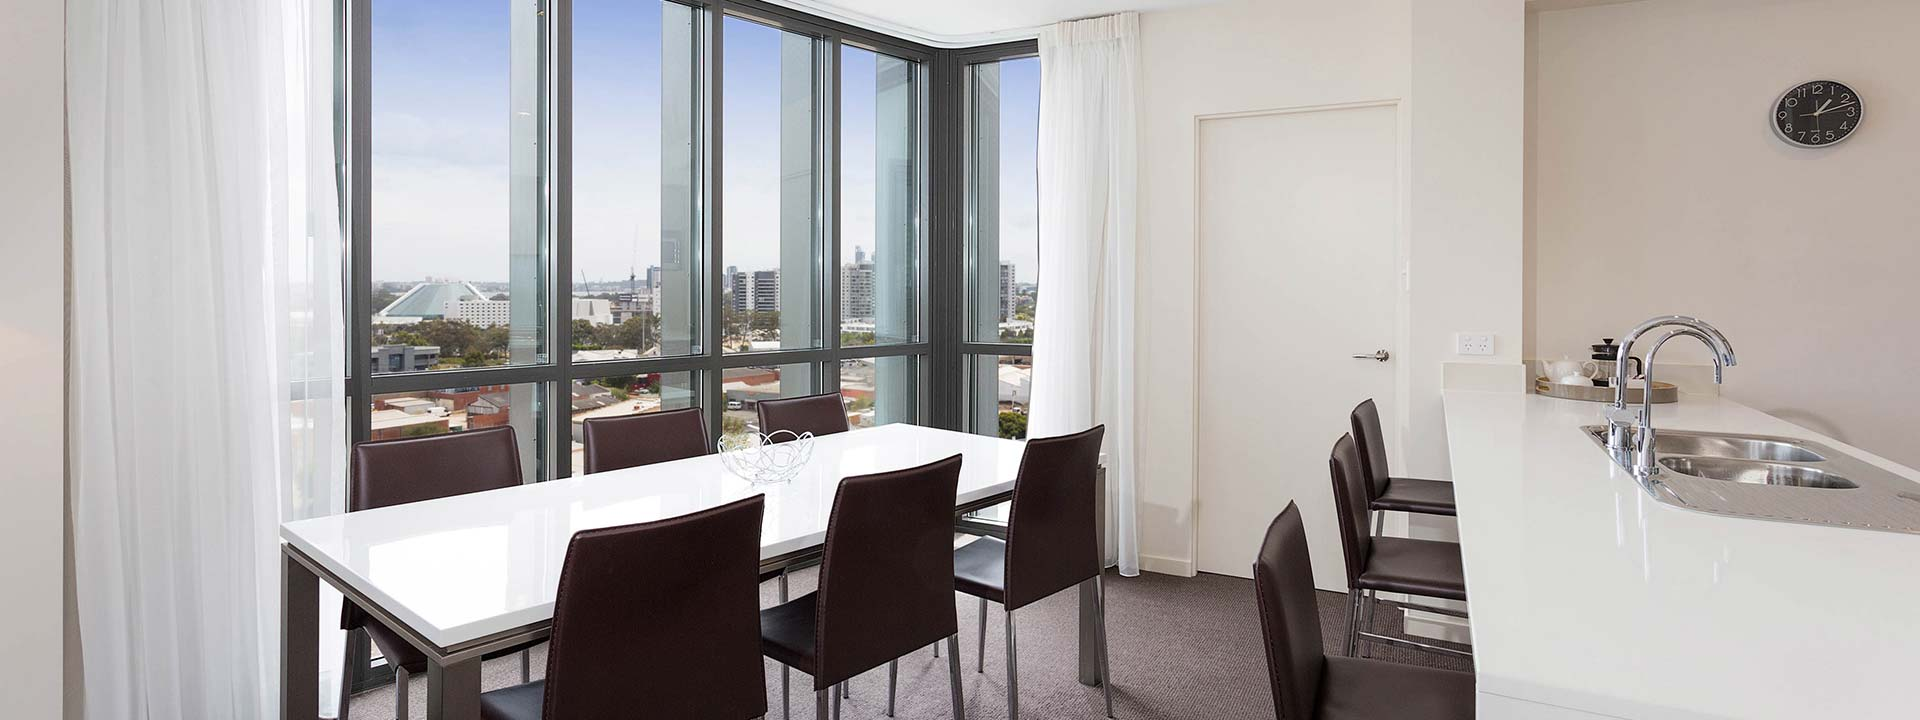 Stay in Perth's Premier Apartment Accommodation